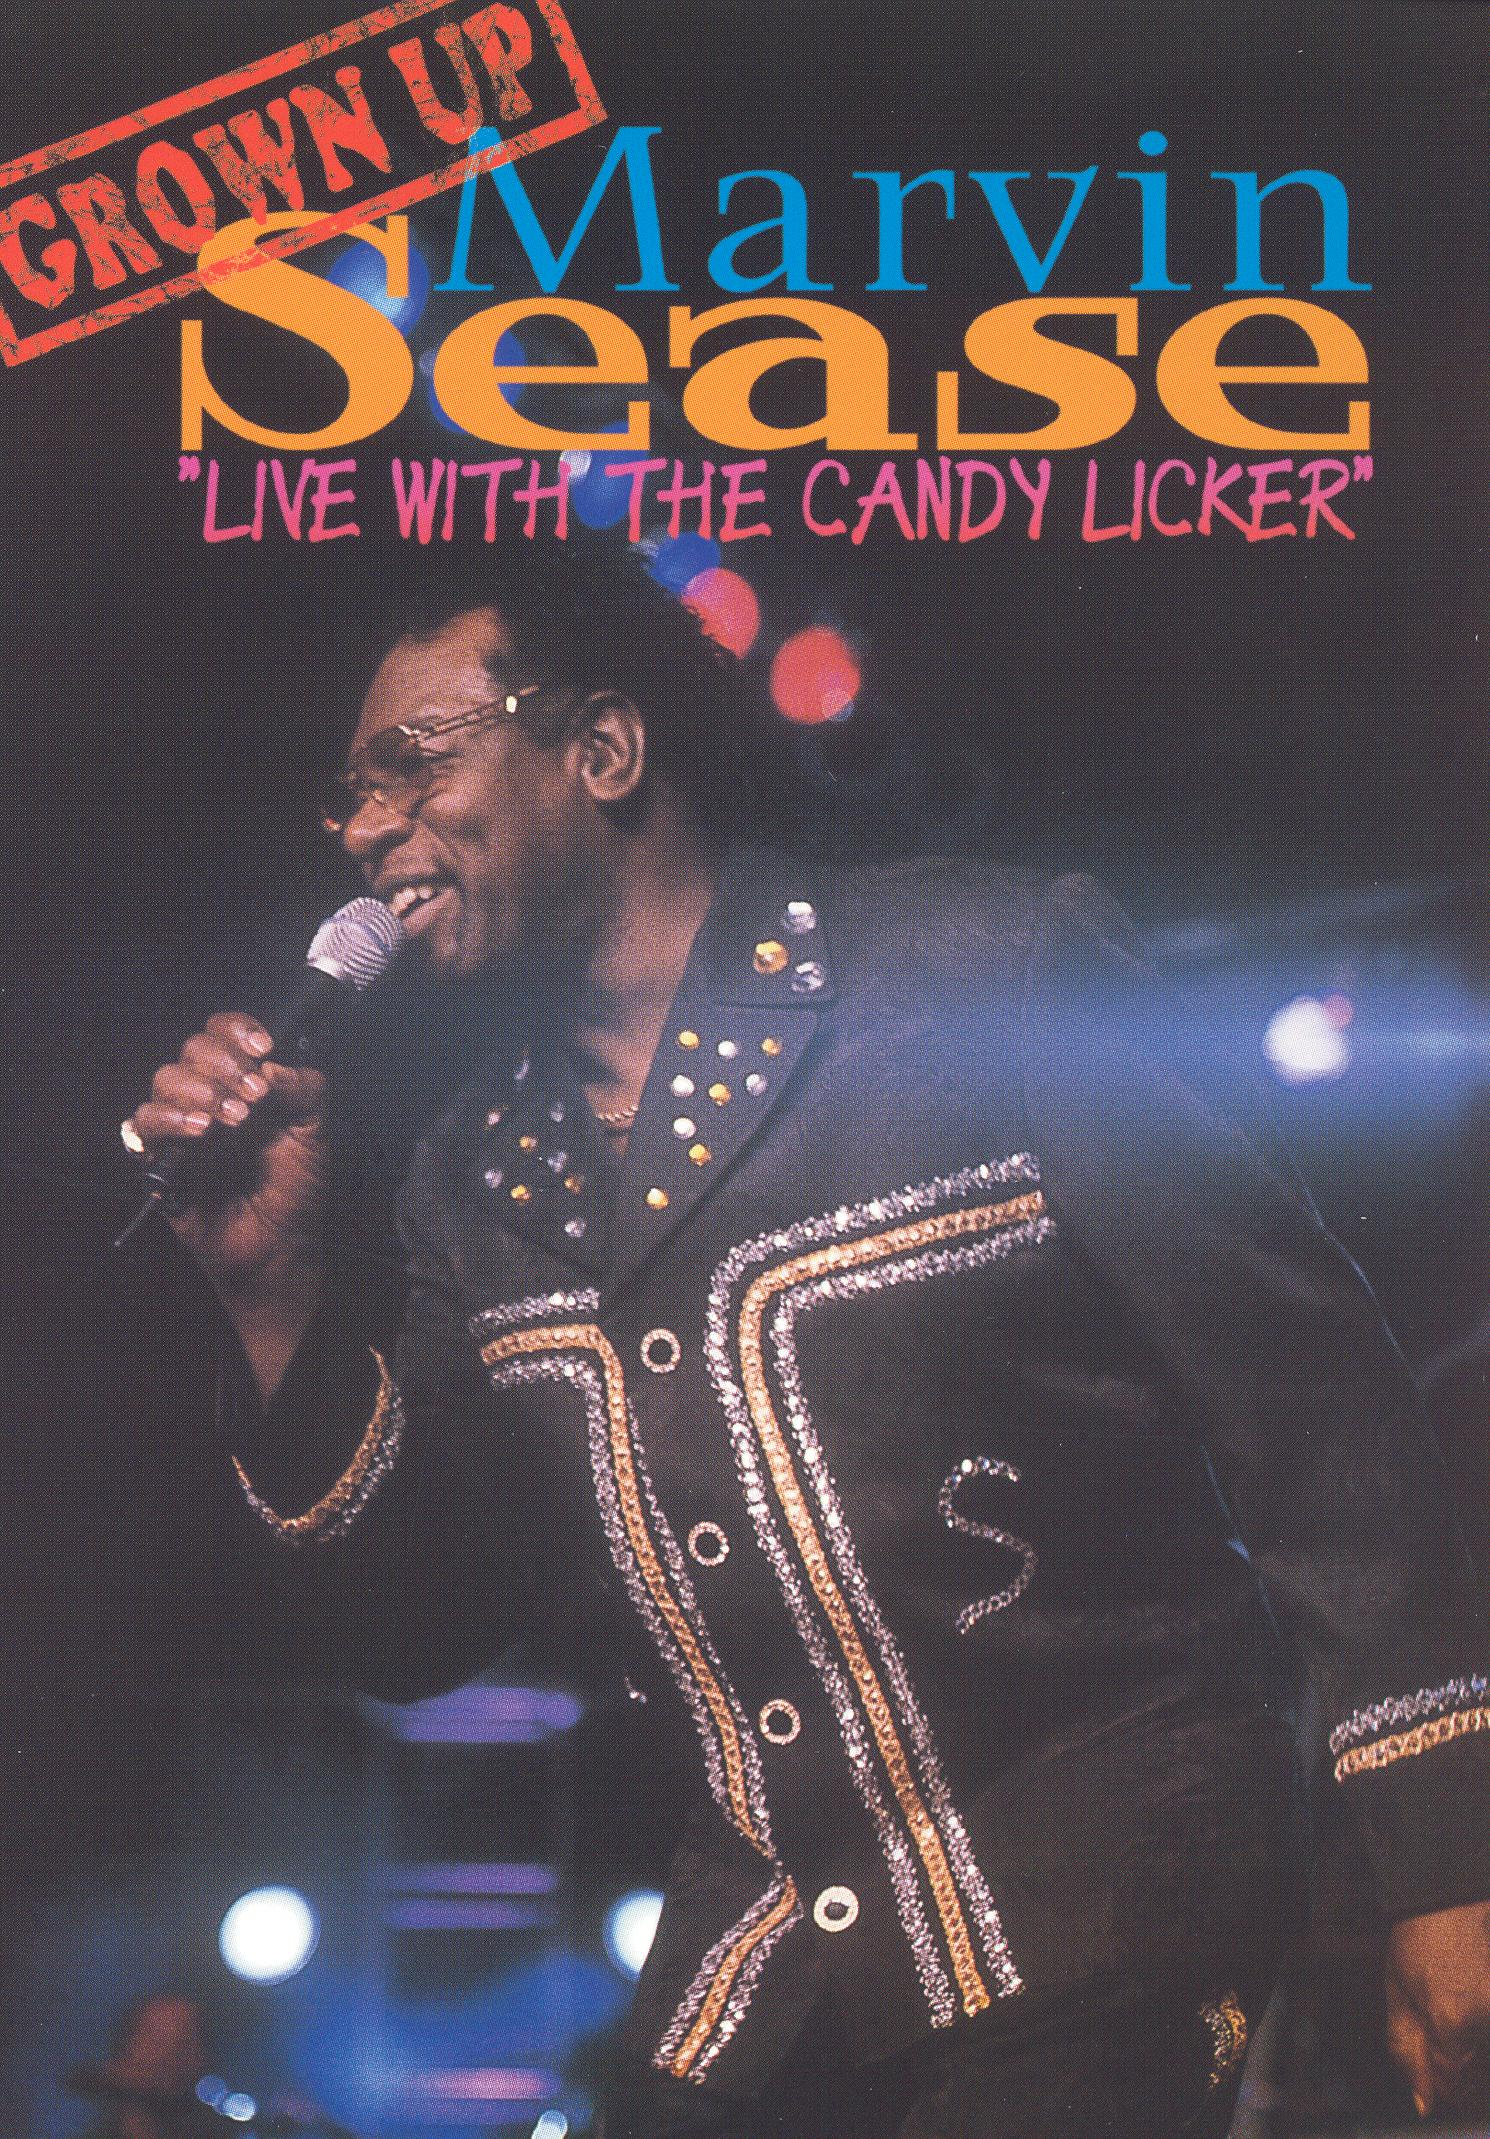 Marvin Sease: Live with the Candy Licker